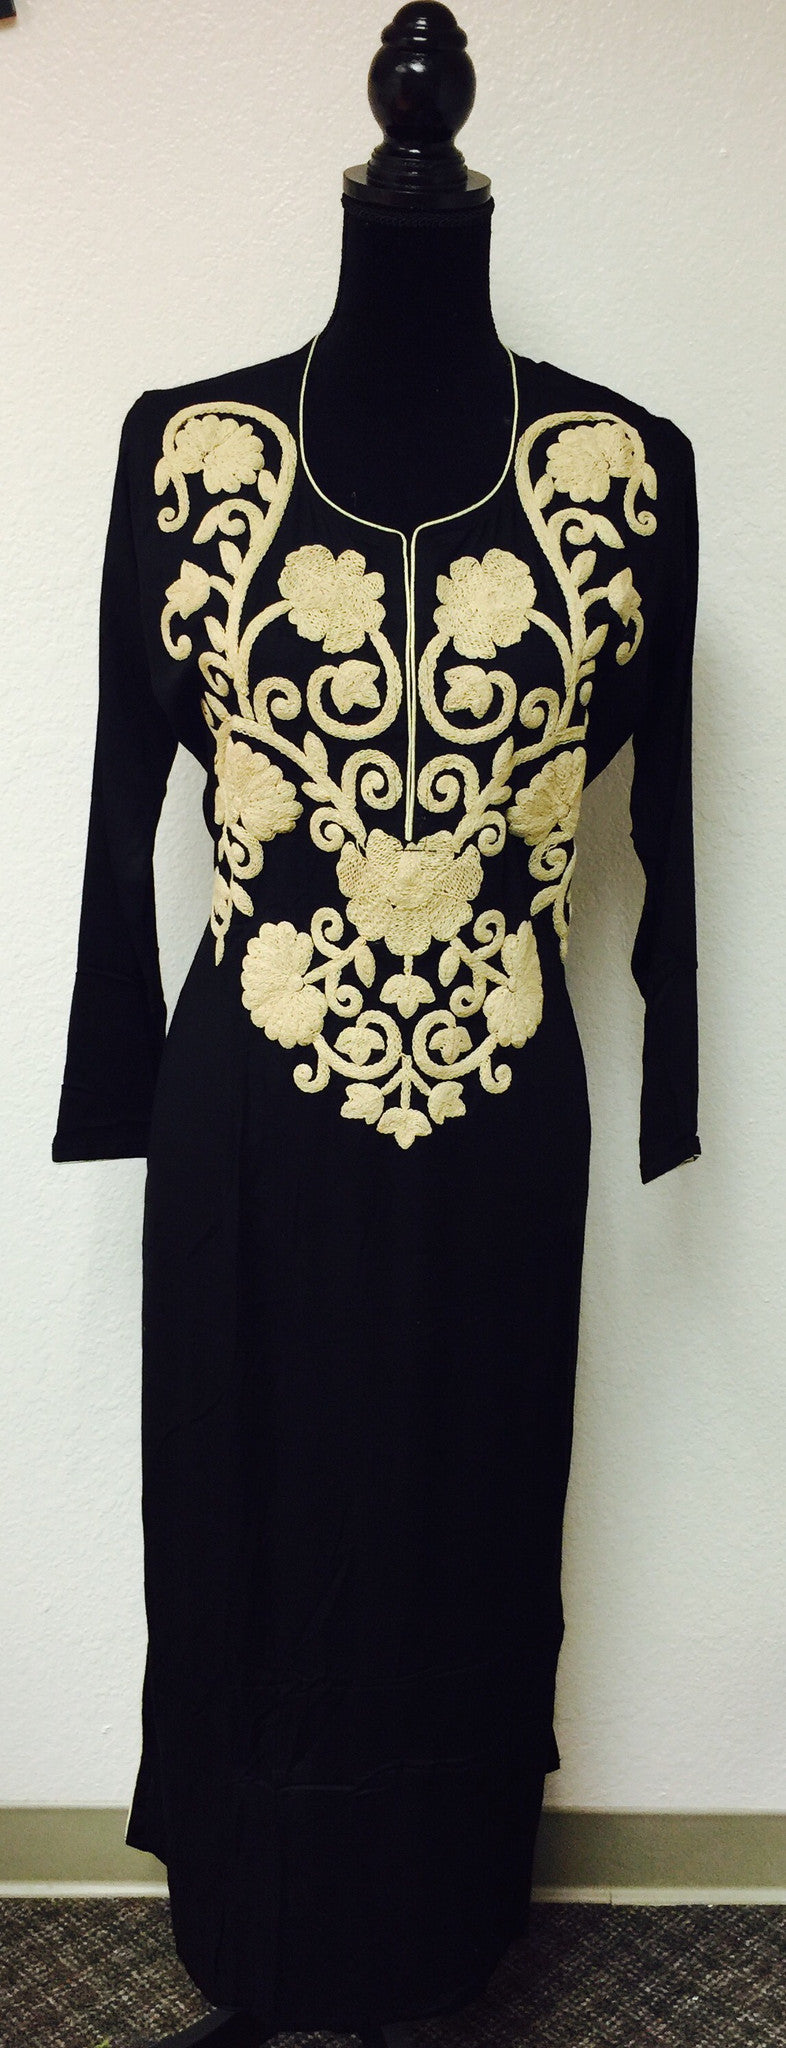 KURTA IN BLCK WITH EMBROIDERED FRONT # Fdn0124 B